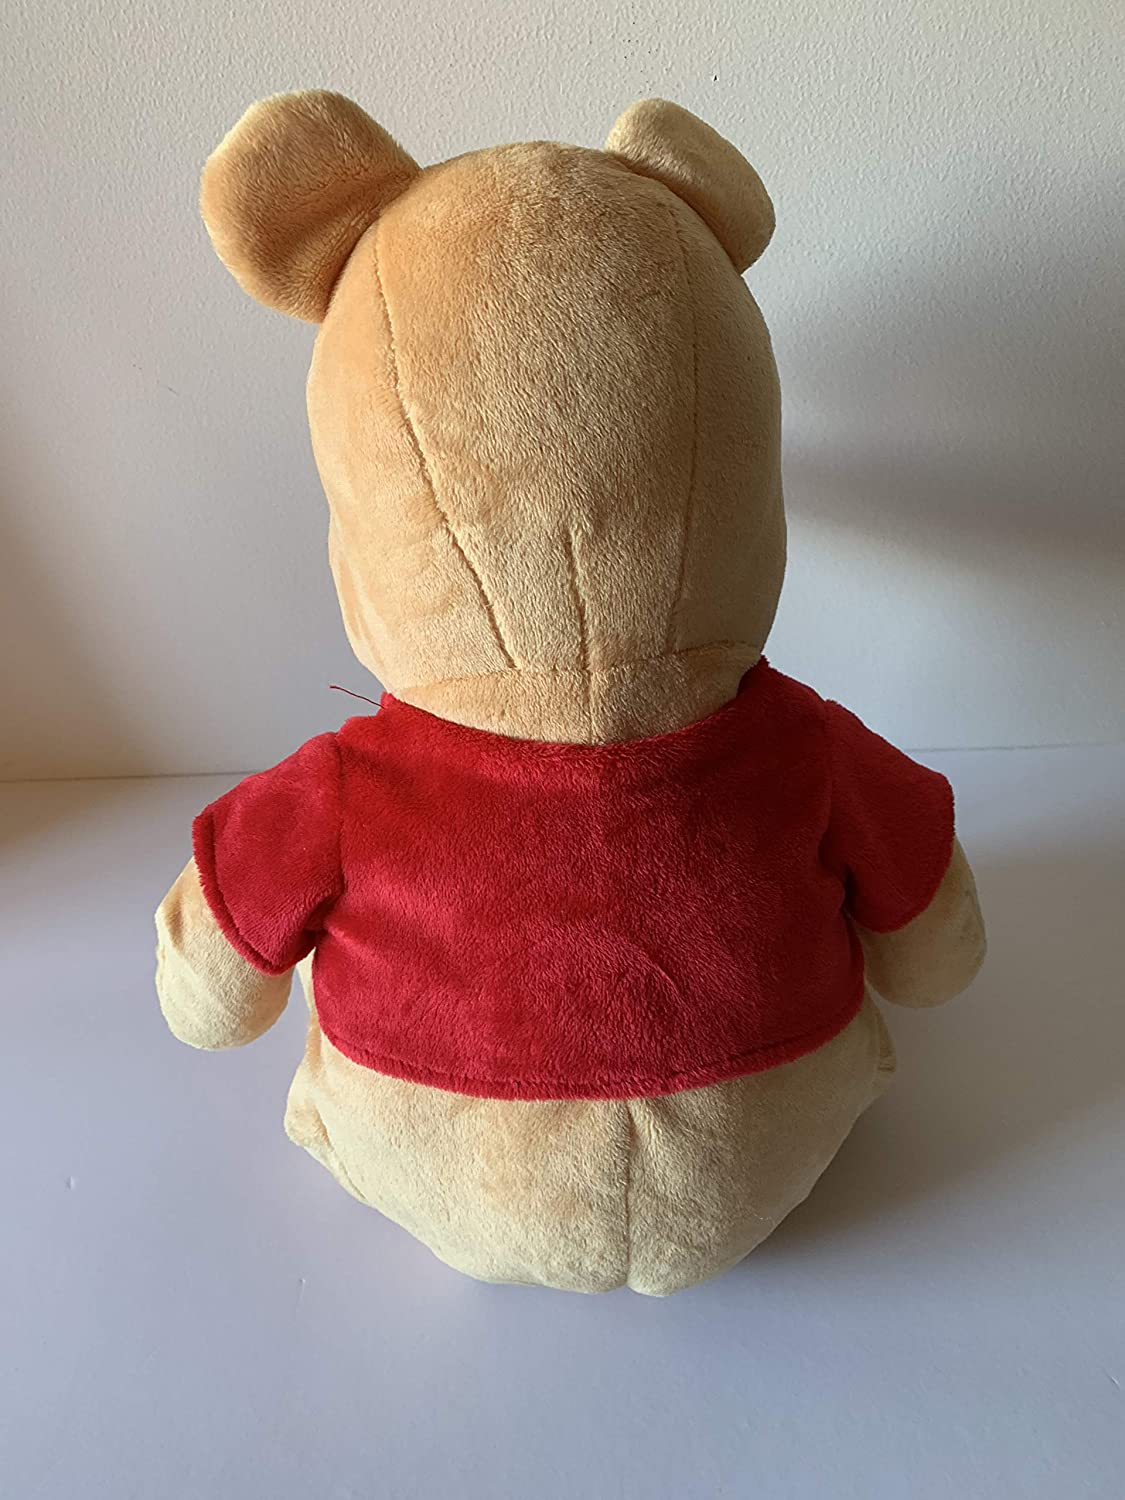 weighted buddy Weighted stuffed bear bear 5 lbs sensory toy Winnie the Pooh